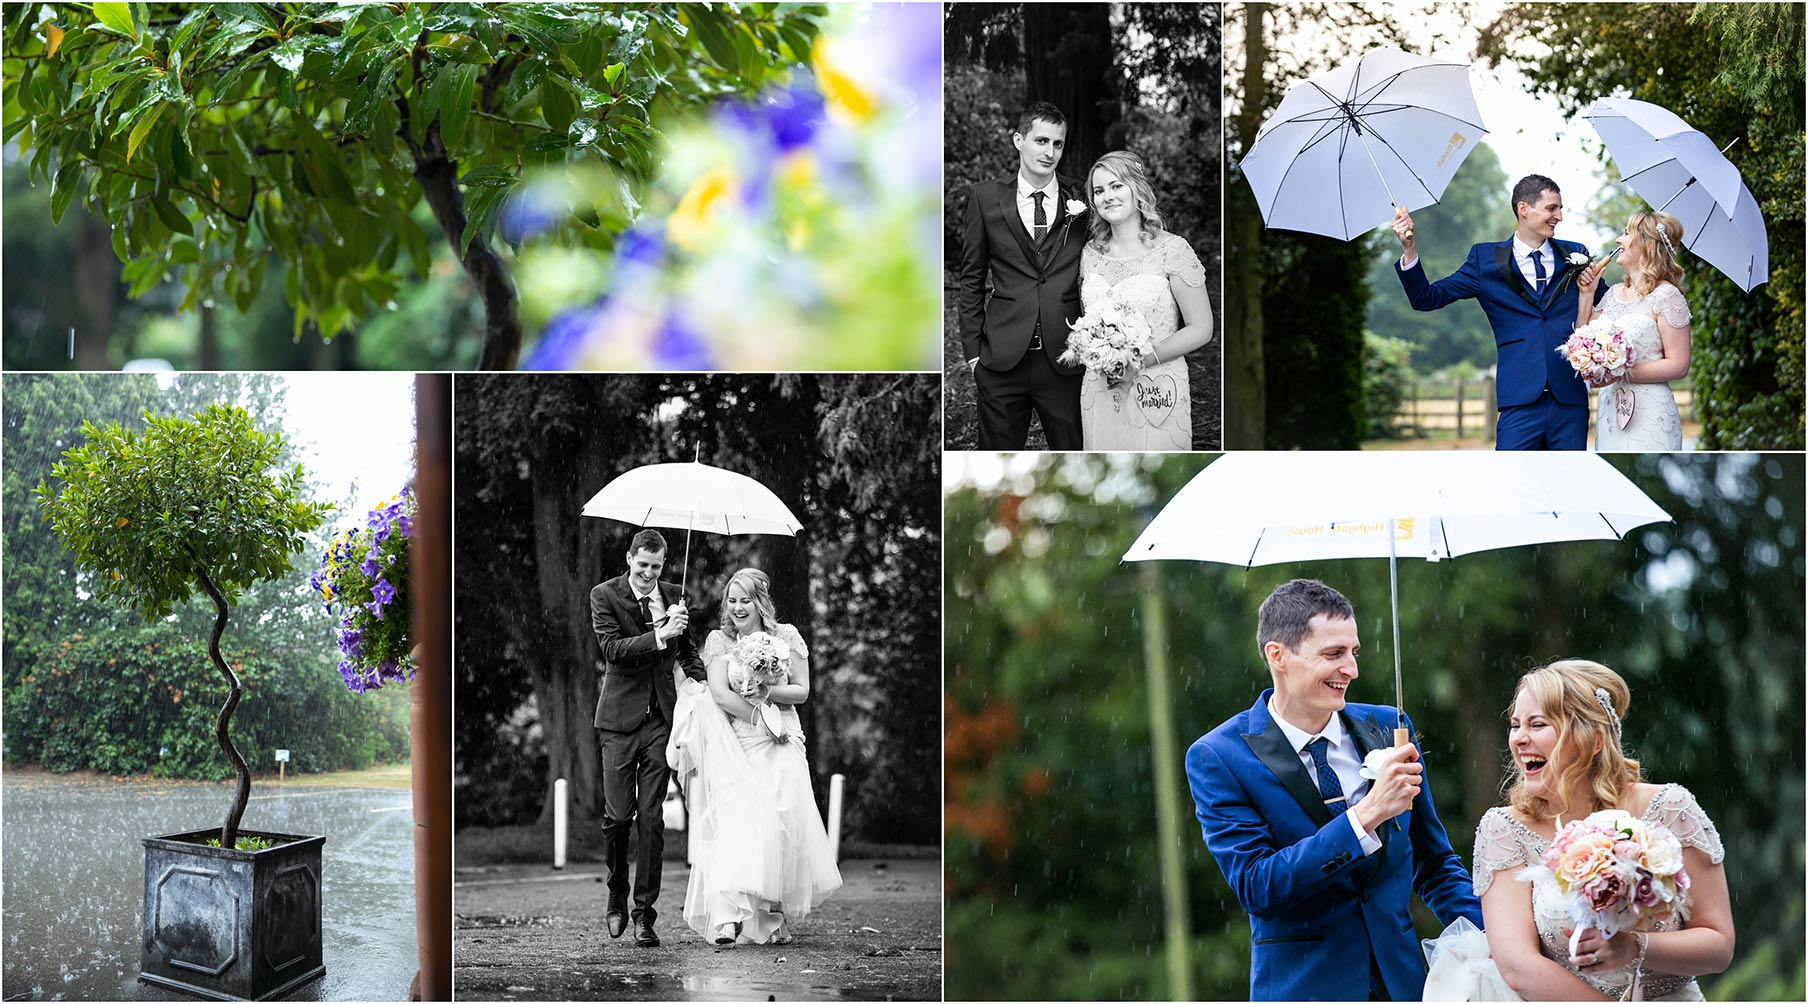 wet wedding photography